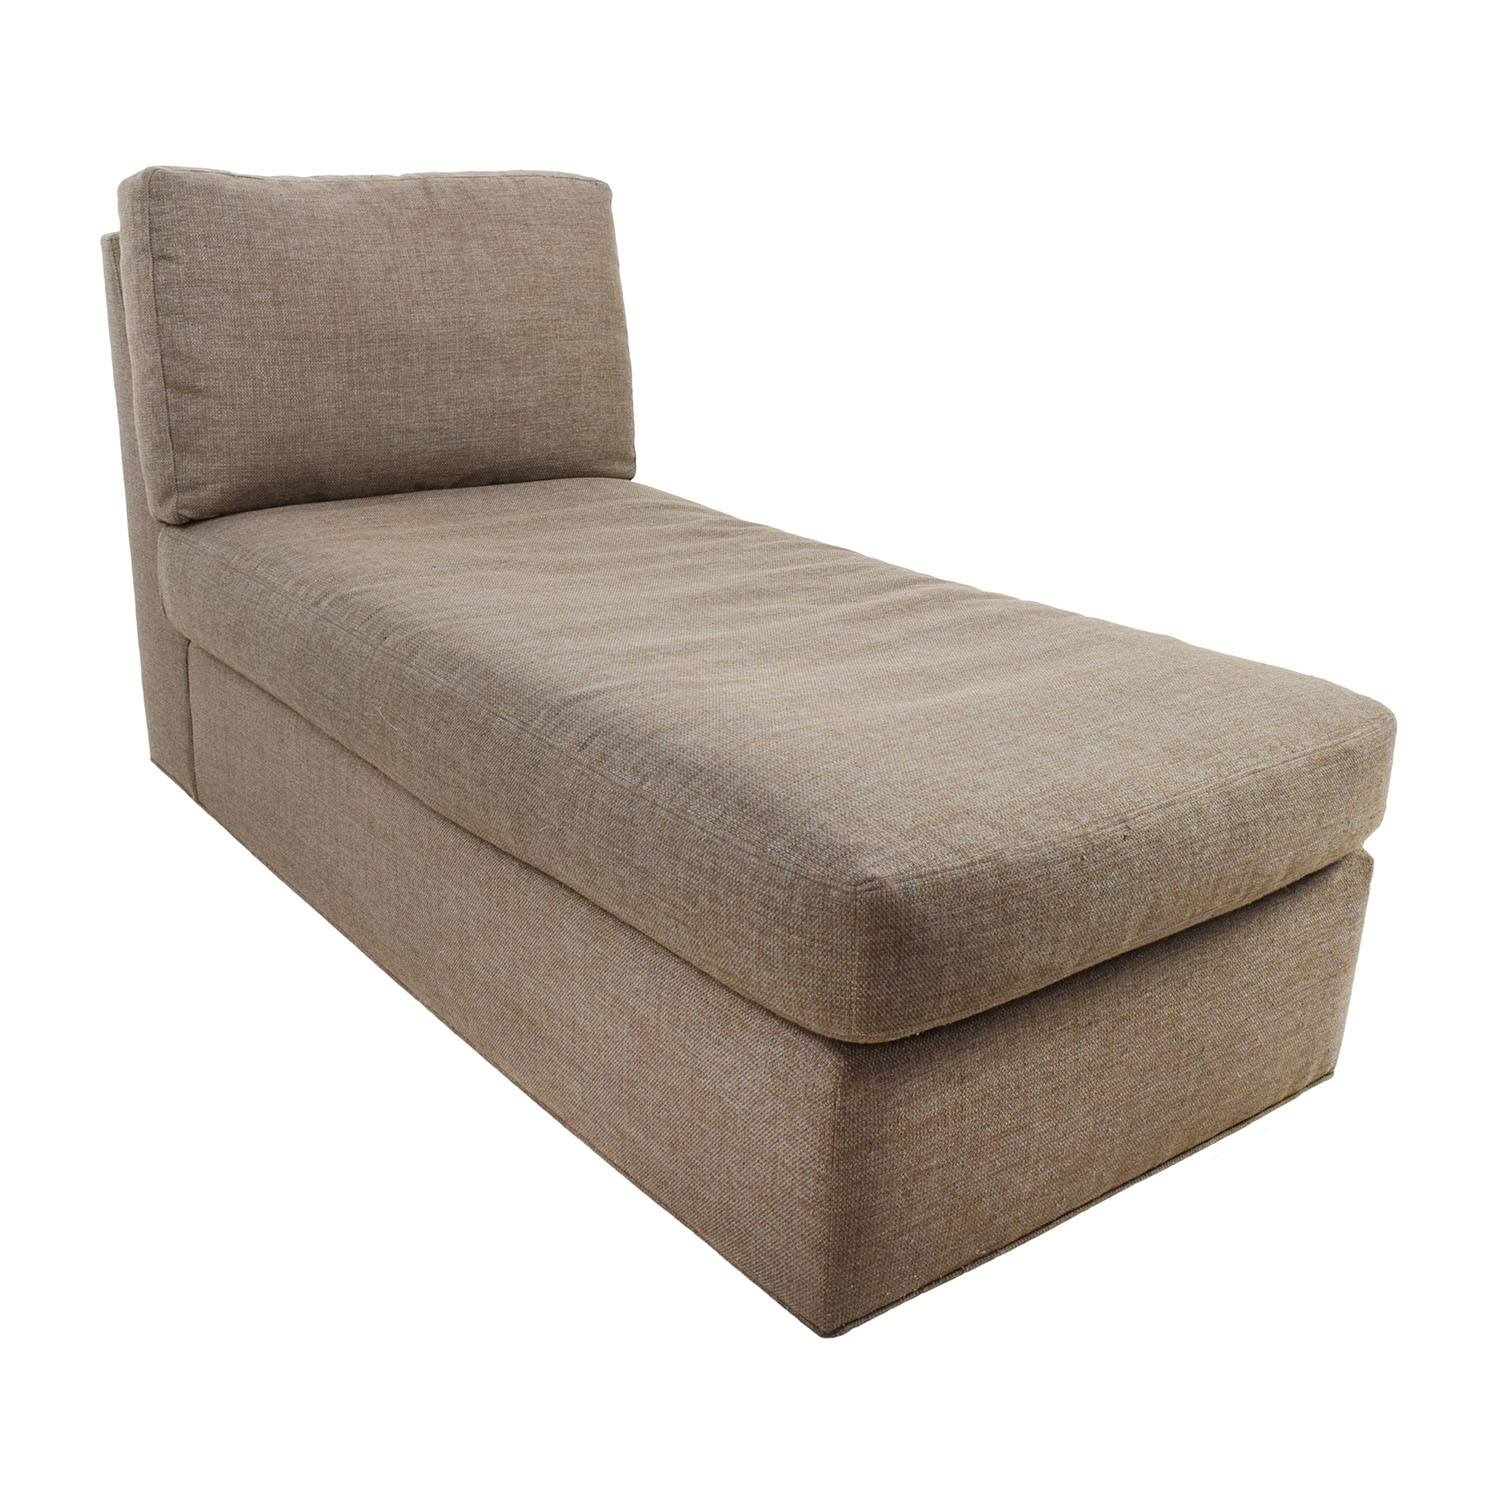 75 off crate and barrel crate barrel brown chaise for Brown chaise lounge sofa